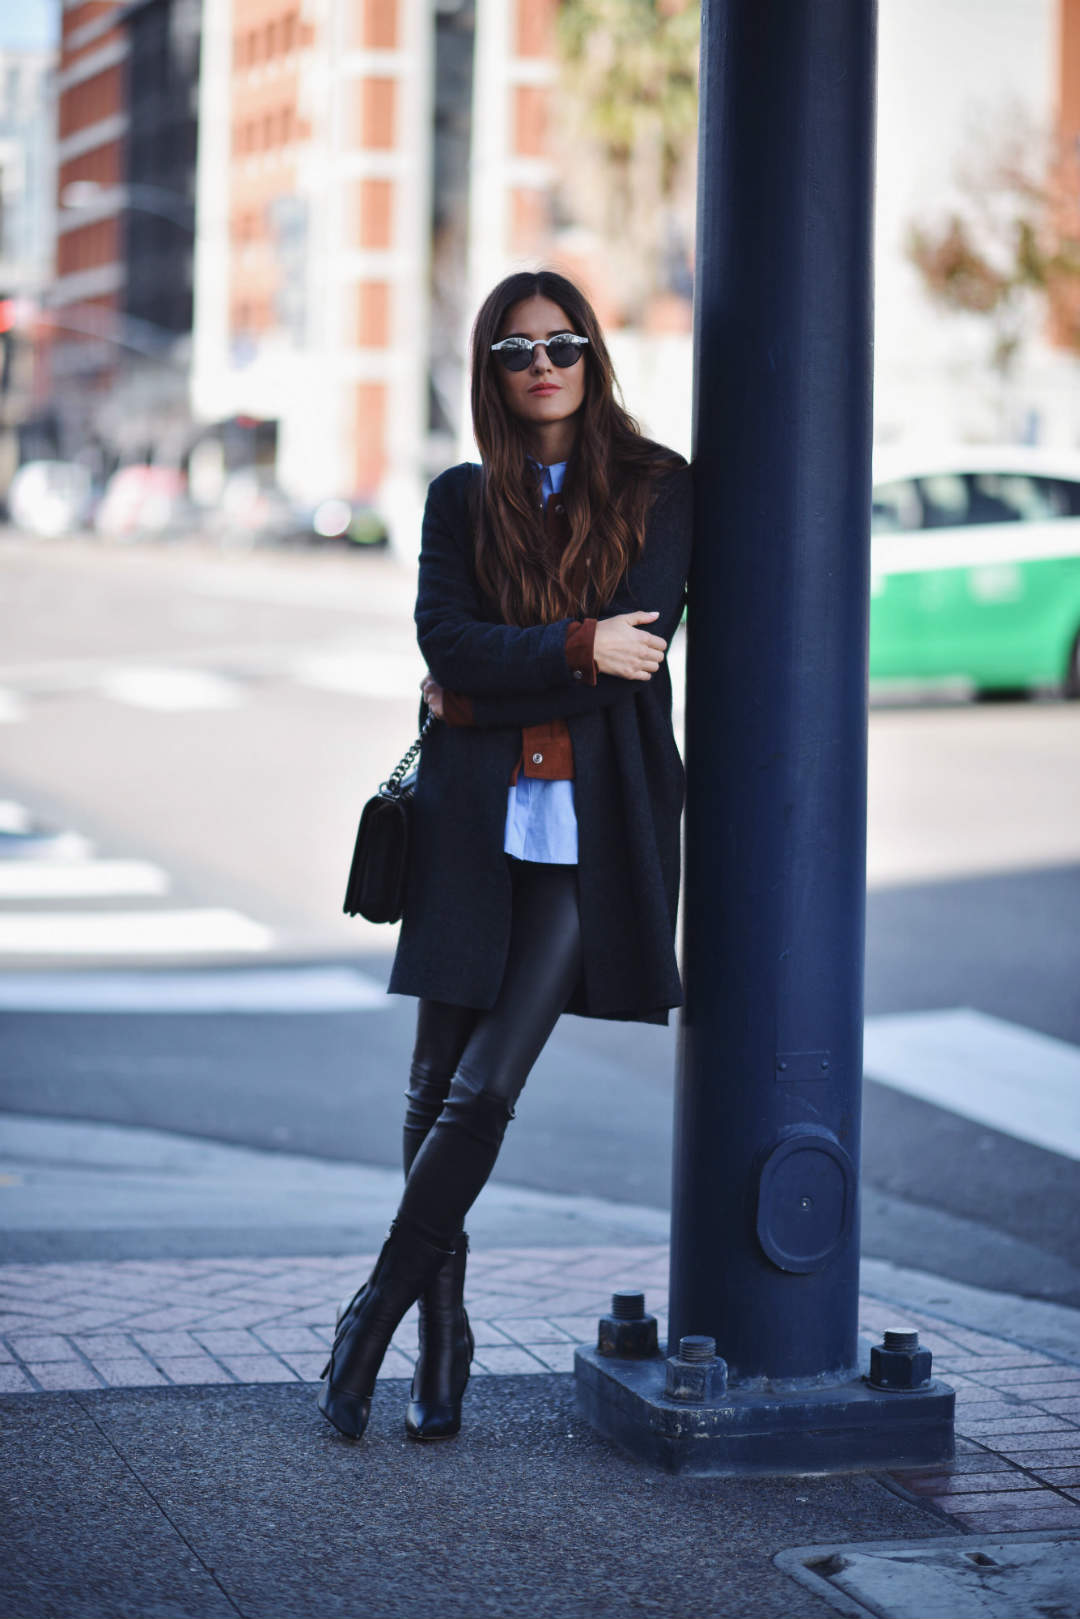 Layering is a brilliant way to achieve a classy and elegant style. Paola Alberdi pairs leather leggings with multiple layers, including a blouse, a cardigan, and a navy overcoat. Coat: COS, Jacket: Sanctuary Suede Jacket, Blouse/Leggings: LXE, Boots: Max Mara.